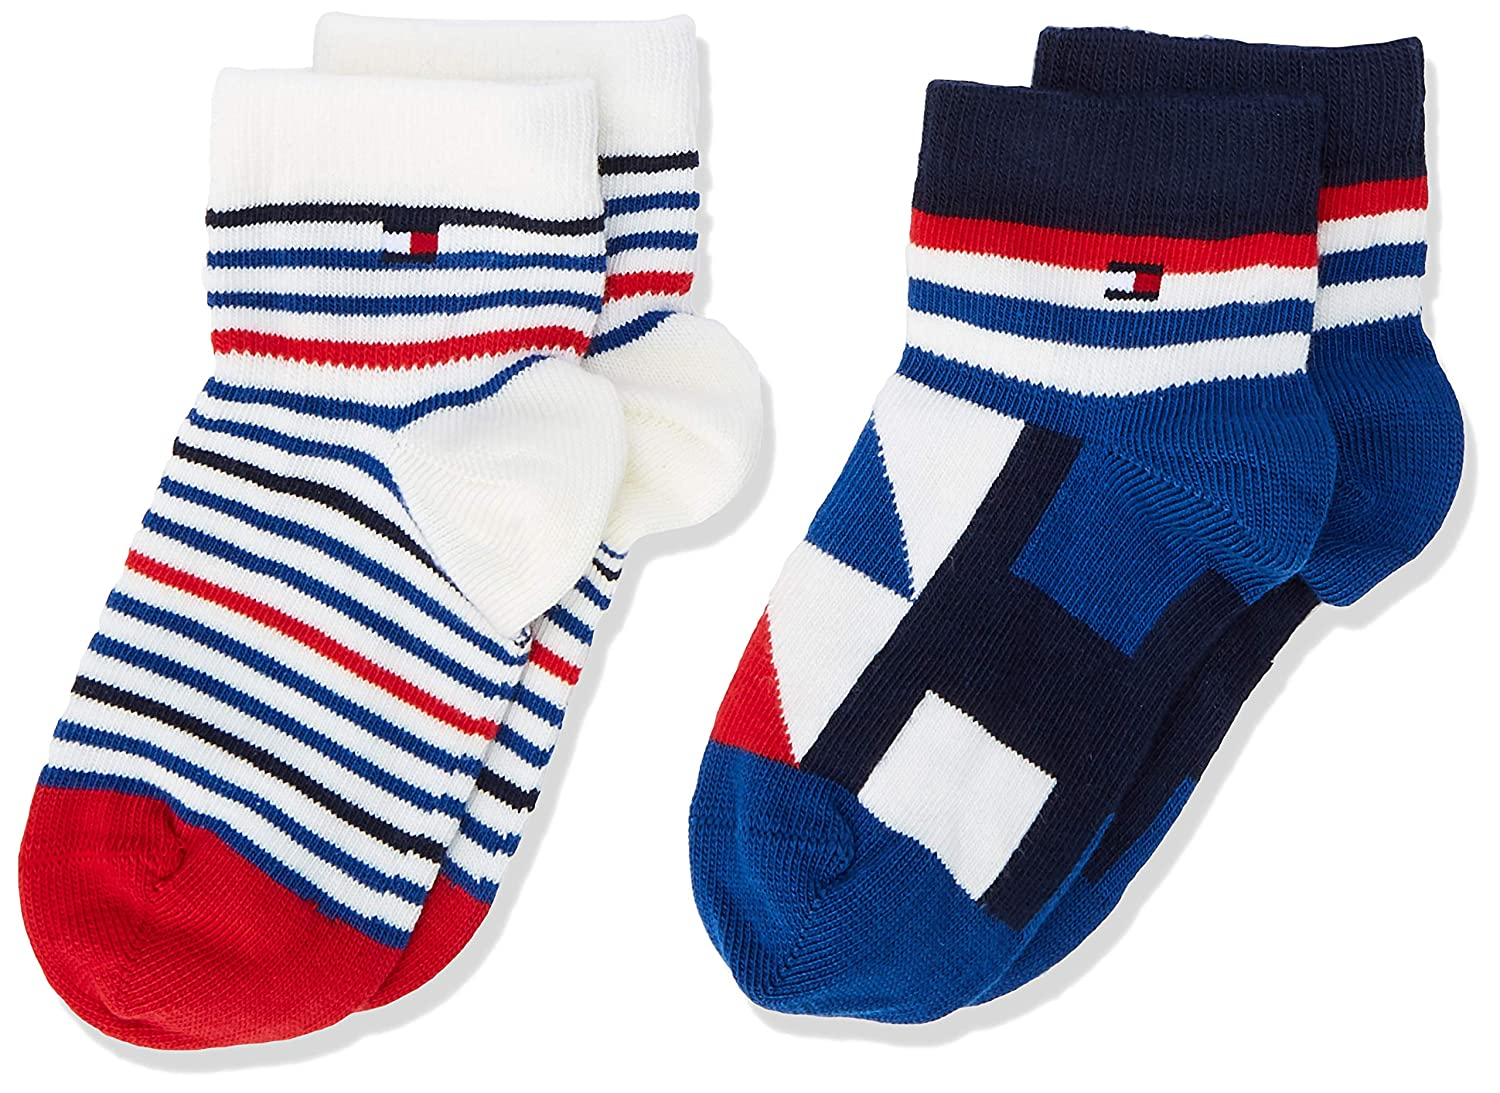 Pack of 2 Tommy Hilfiger Boys Calf Socks,